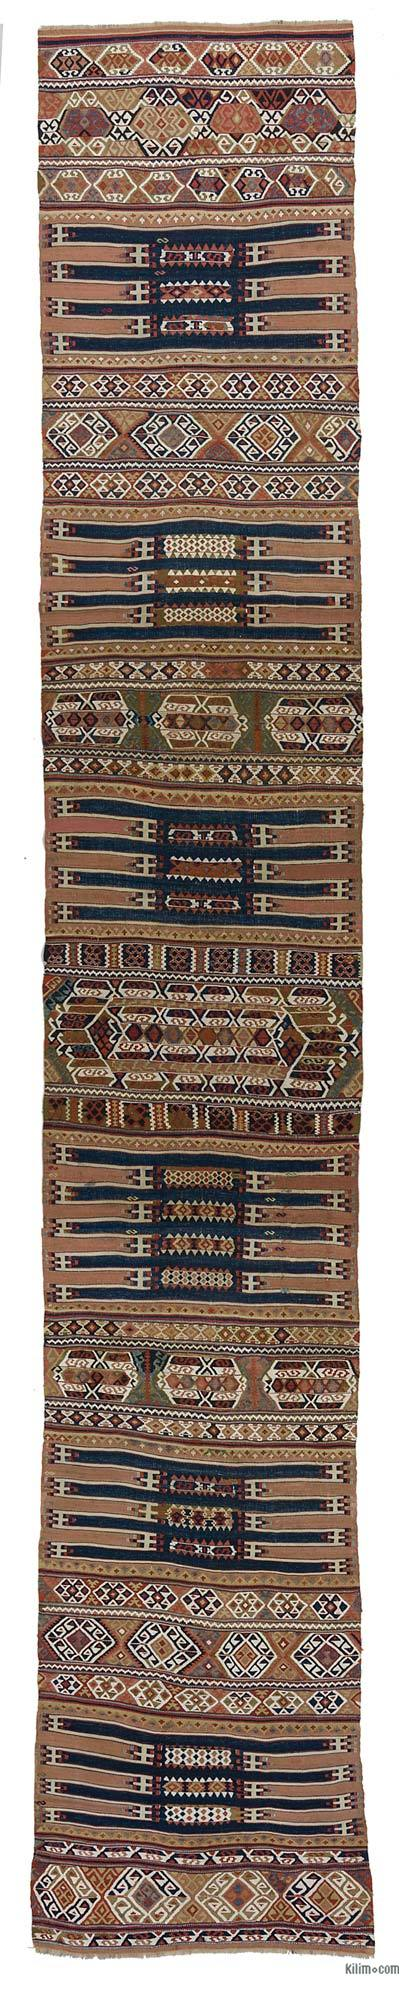 Antique Malatya Kilim Runner Rug